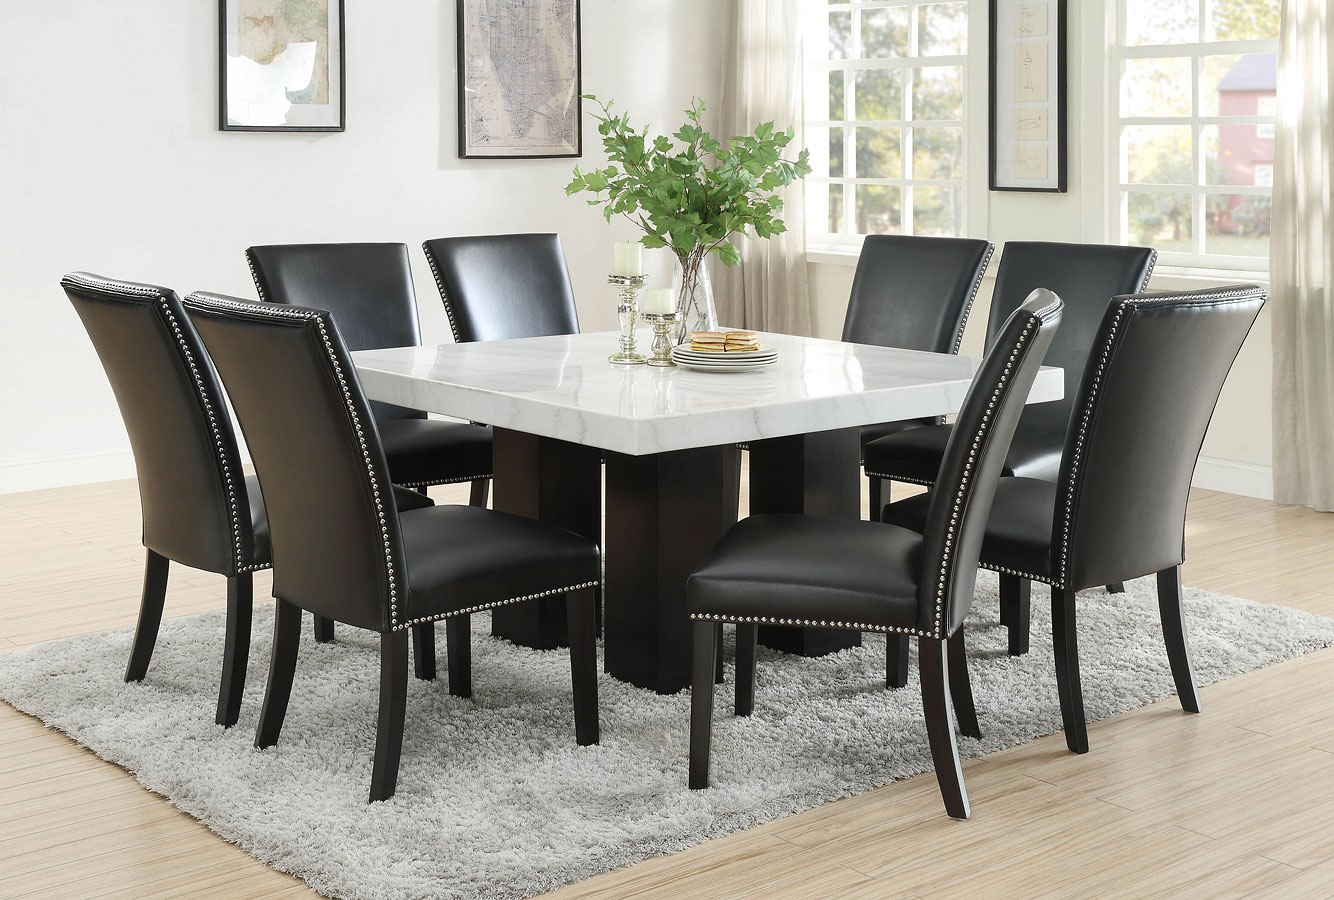 Picture of: Camila Square Dining Room Set W Black Pu Chairs Steve Silver Furniture Furniture Cart